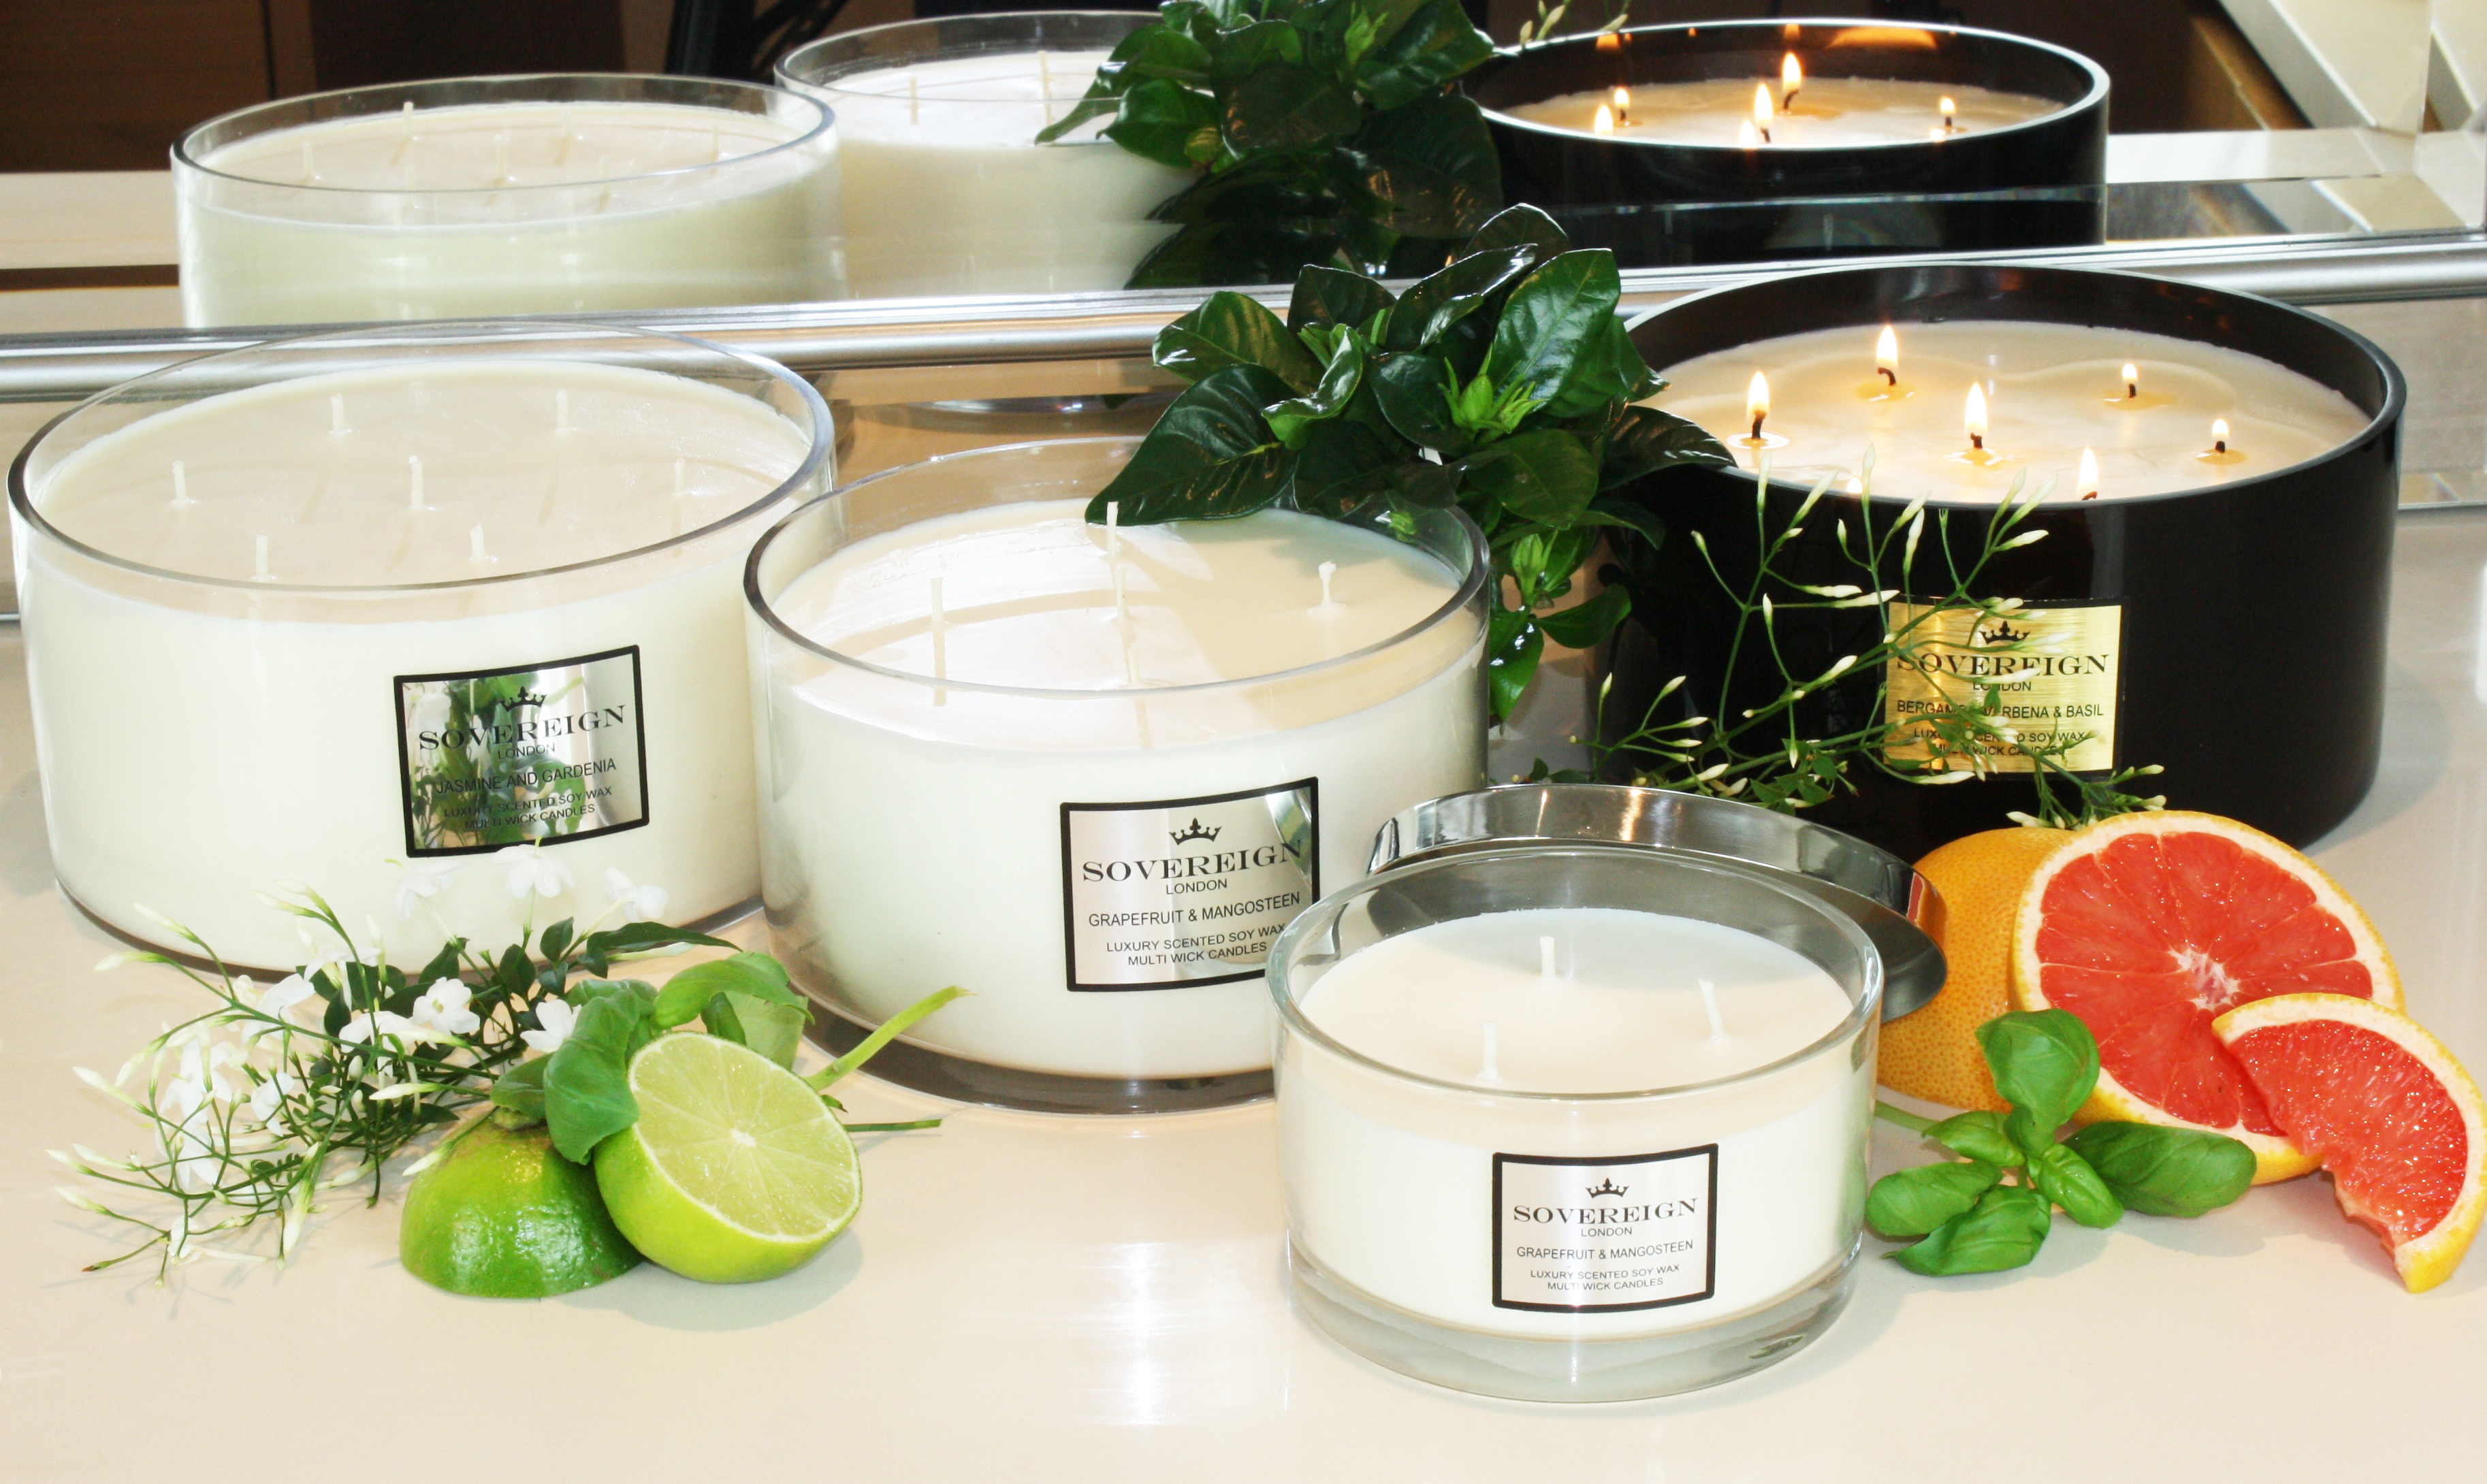 100% Natural Soy Wax